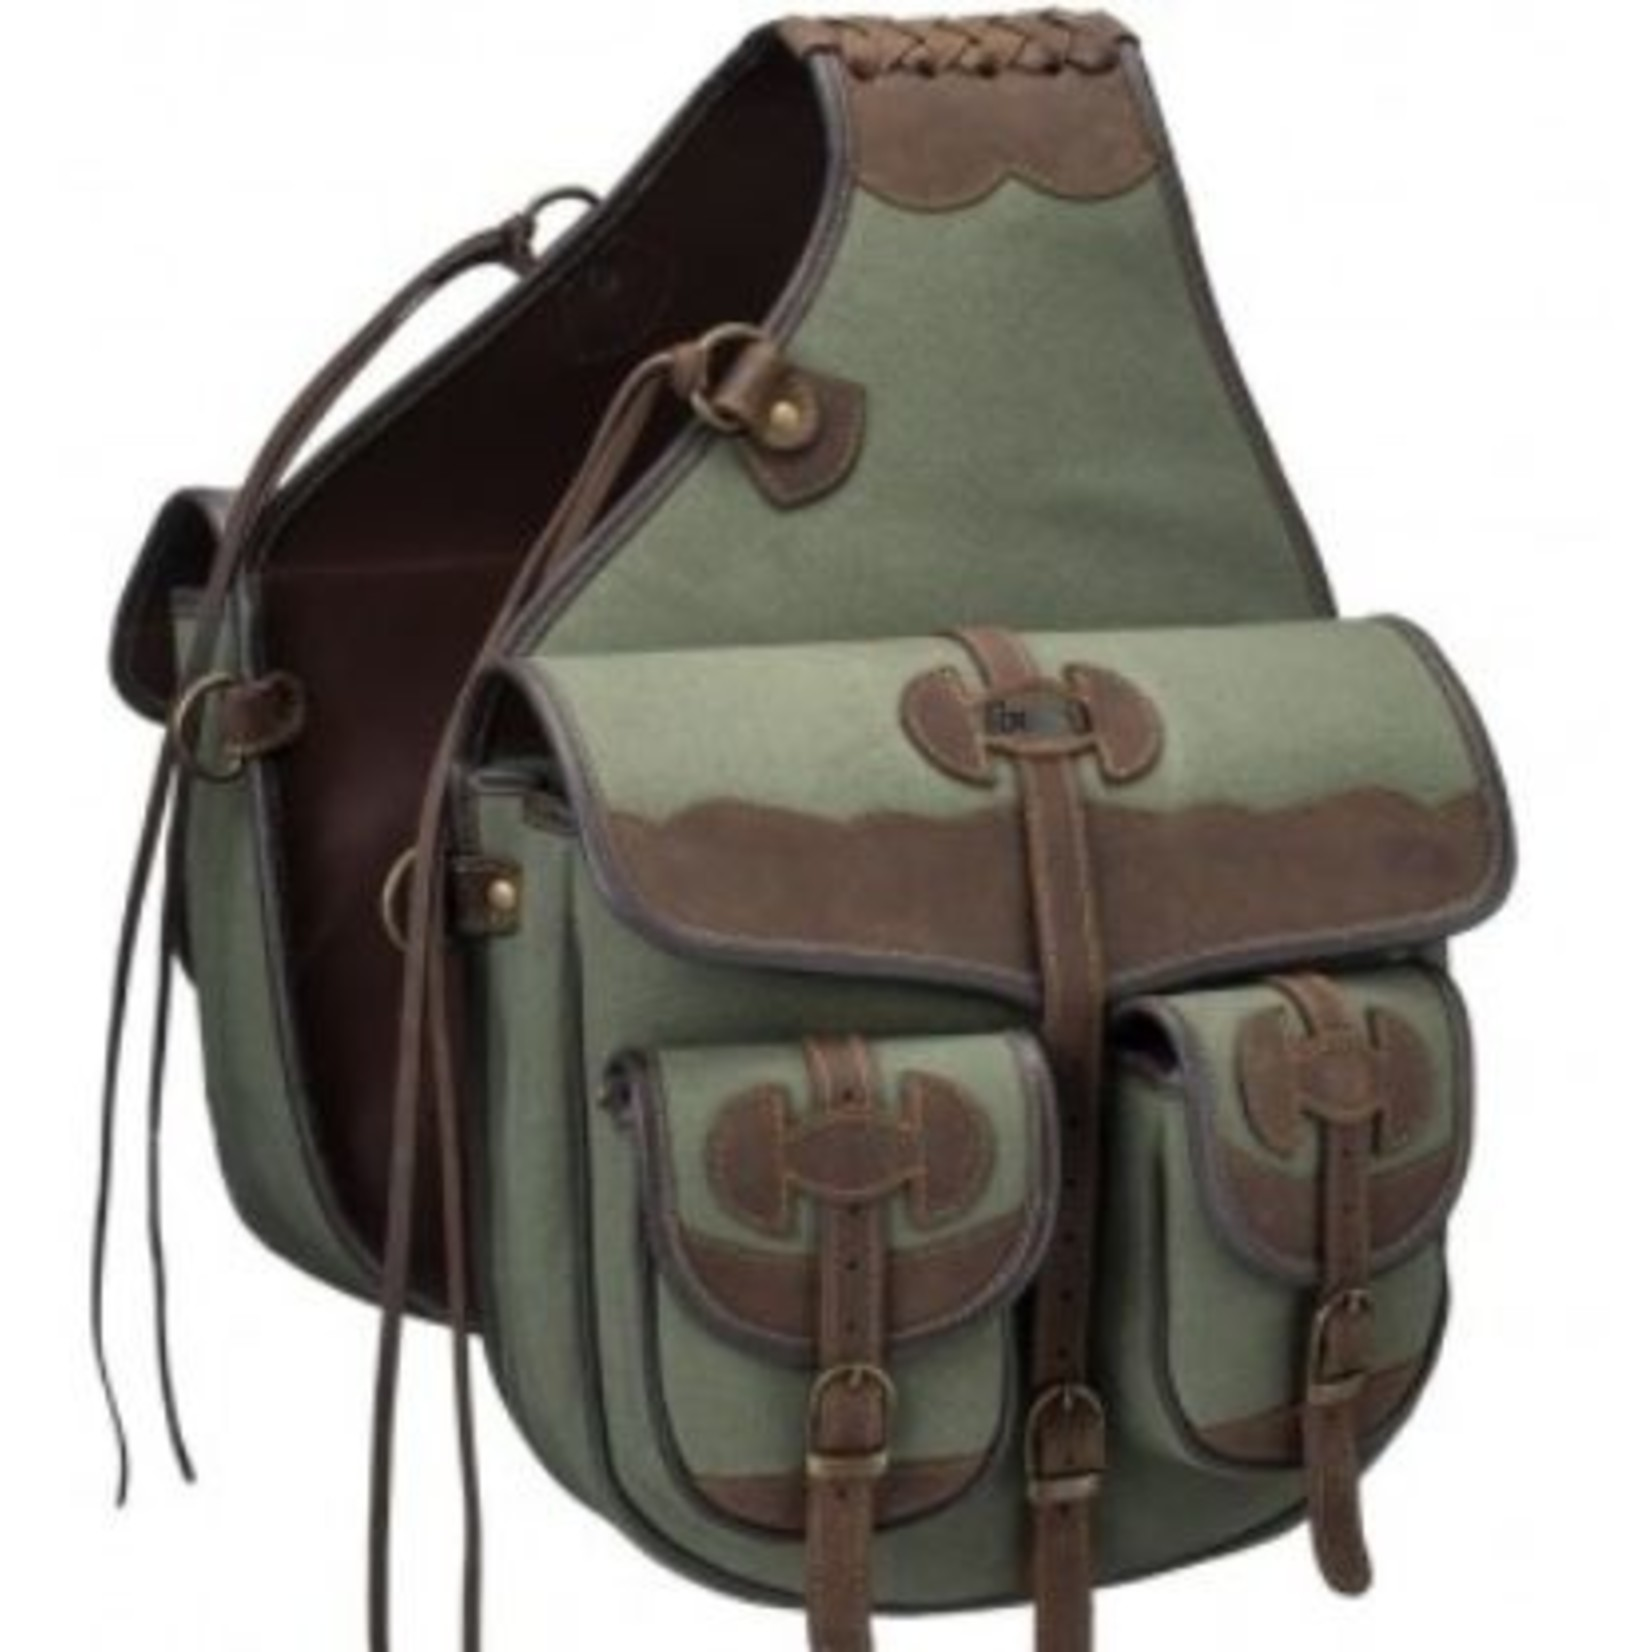 Tough-1 Canvas Trail Bag with Leather Accents